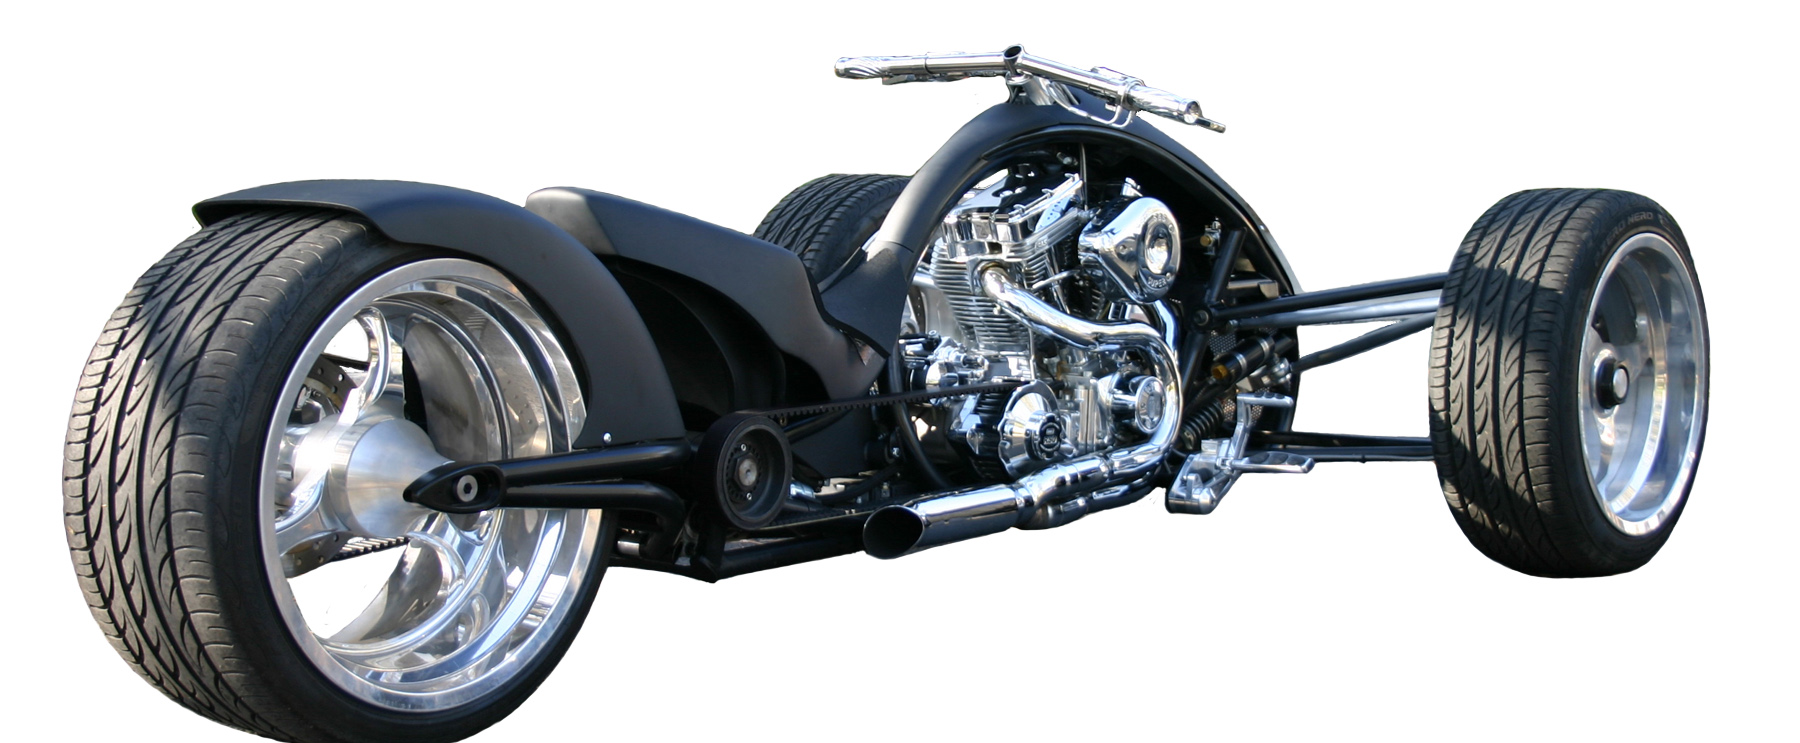 3 Wheeled Motorcycles >> 3-Wheel Motorcycle - VisionWorks Engineering